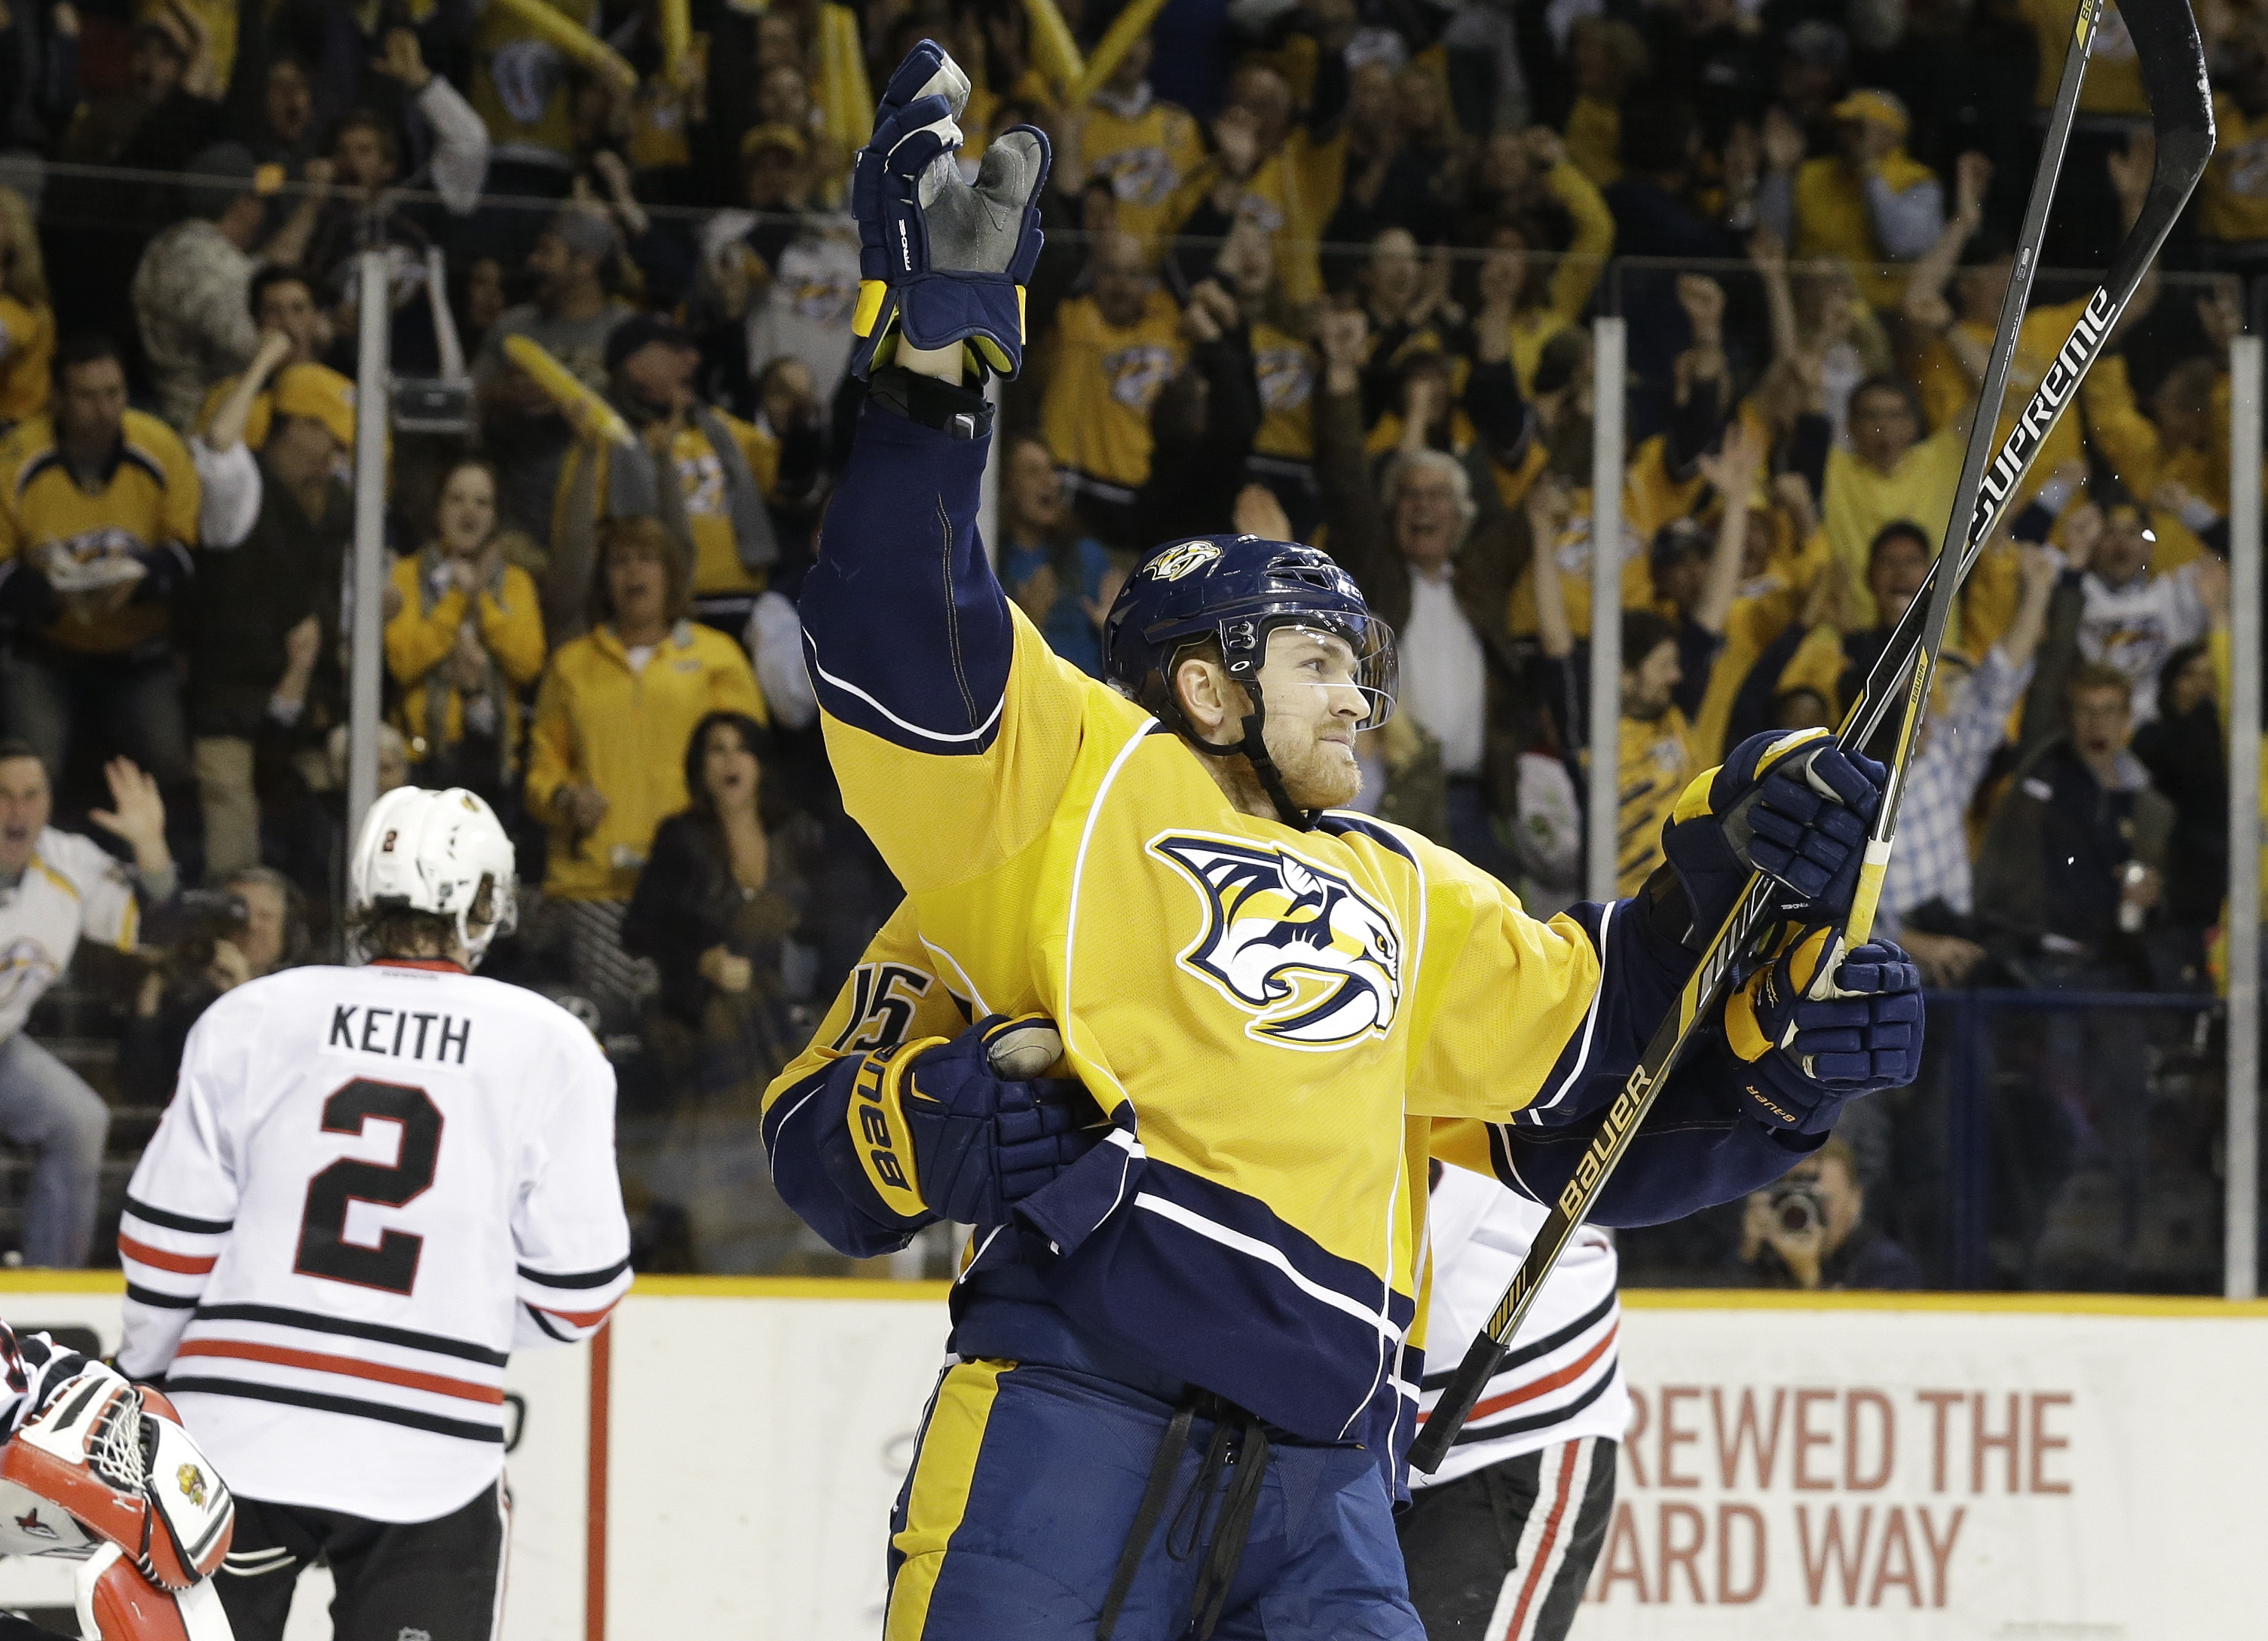 Nashville Predators center Colin Wilson, right, celebrates after scoring a goal against the Chicago Blackhawks during the third period of Game 5 of an NHL hockey first-round playoff series Thursday, April 23, 2015, in Nashville, Tenn. (AP Photo/Mark Humph